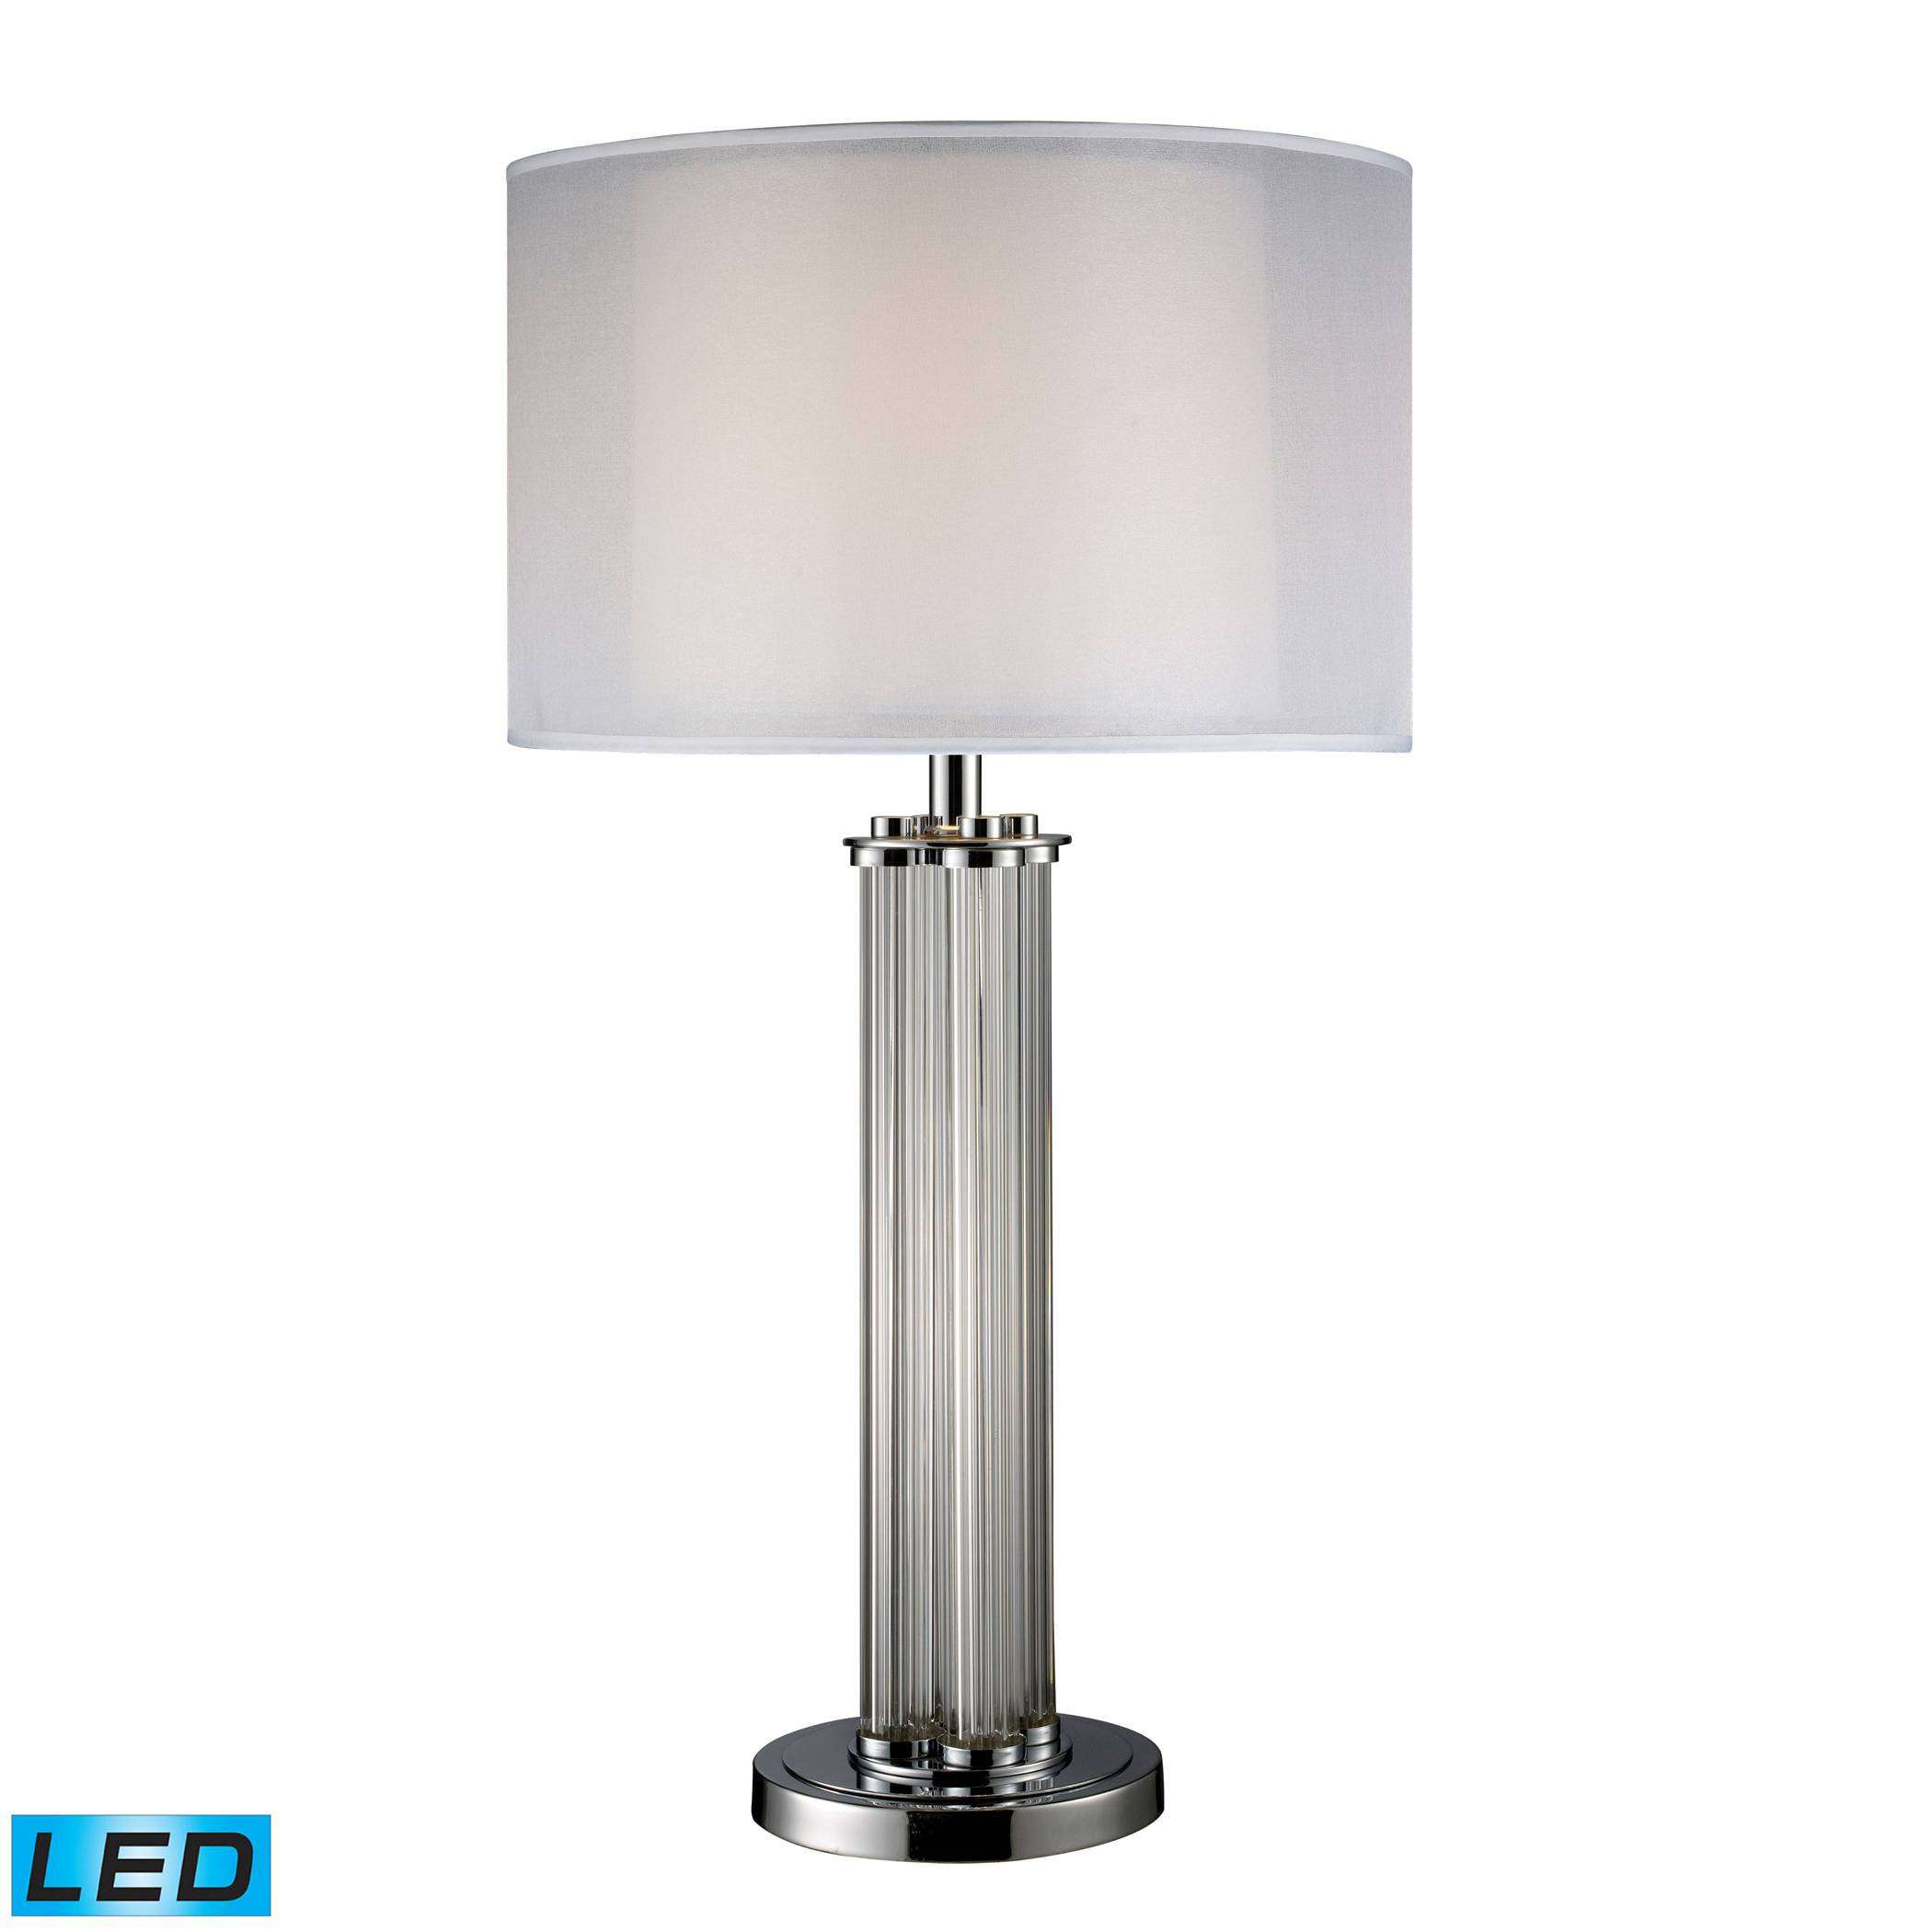 Hallstead Table Lamp In Chrome With Led Bulb